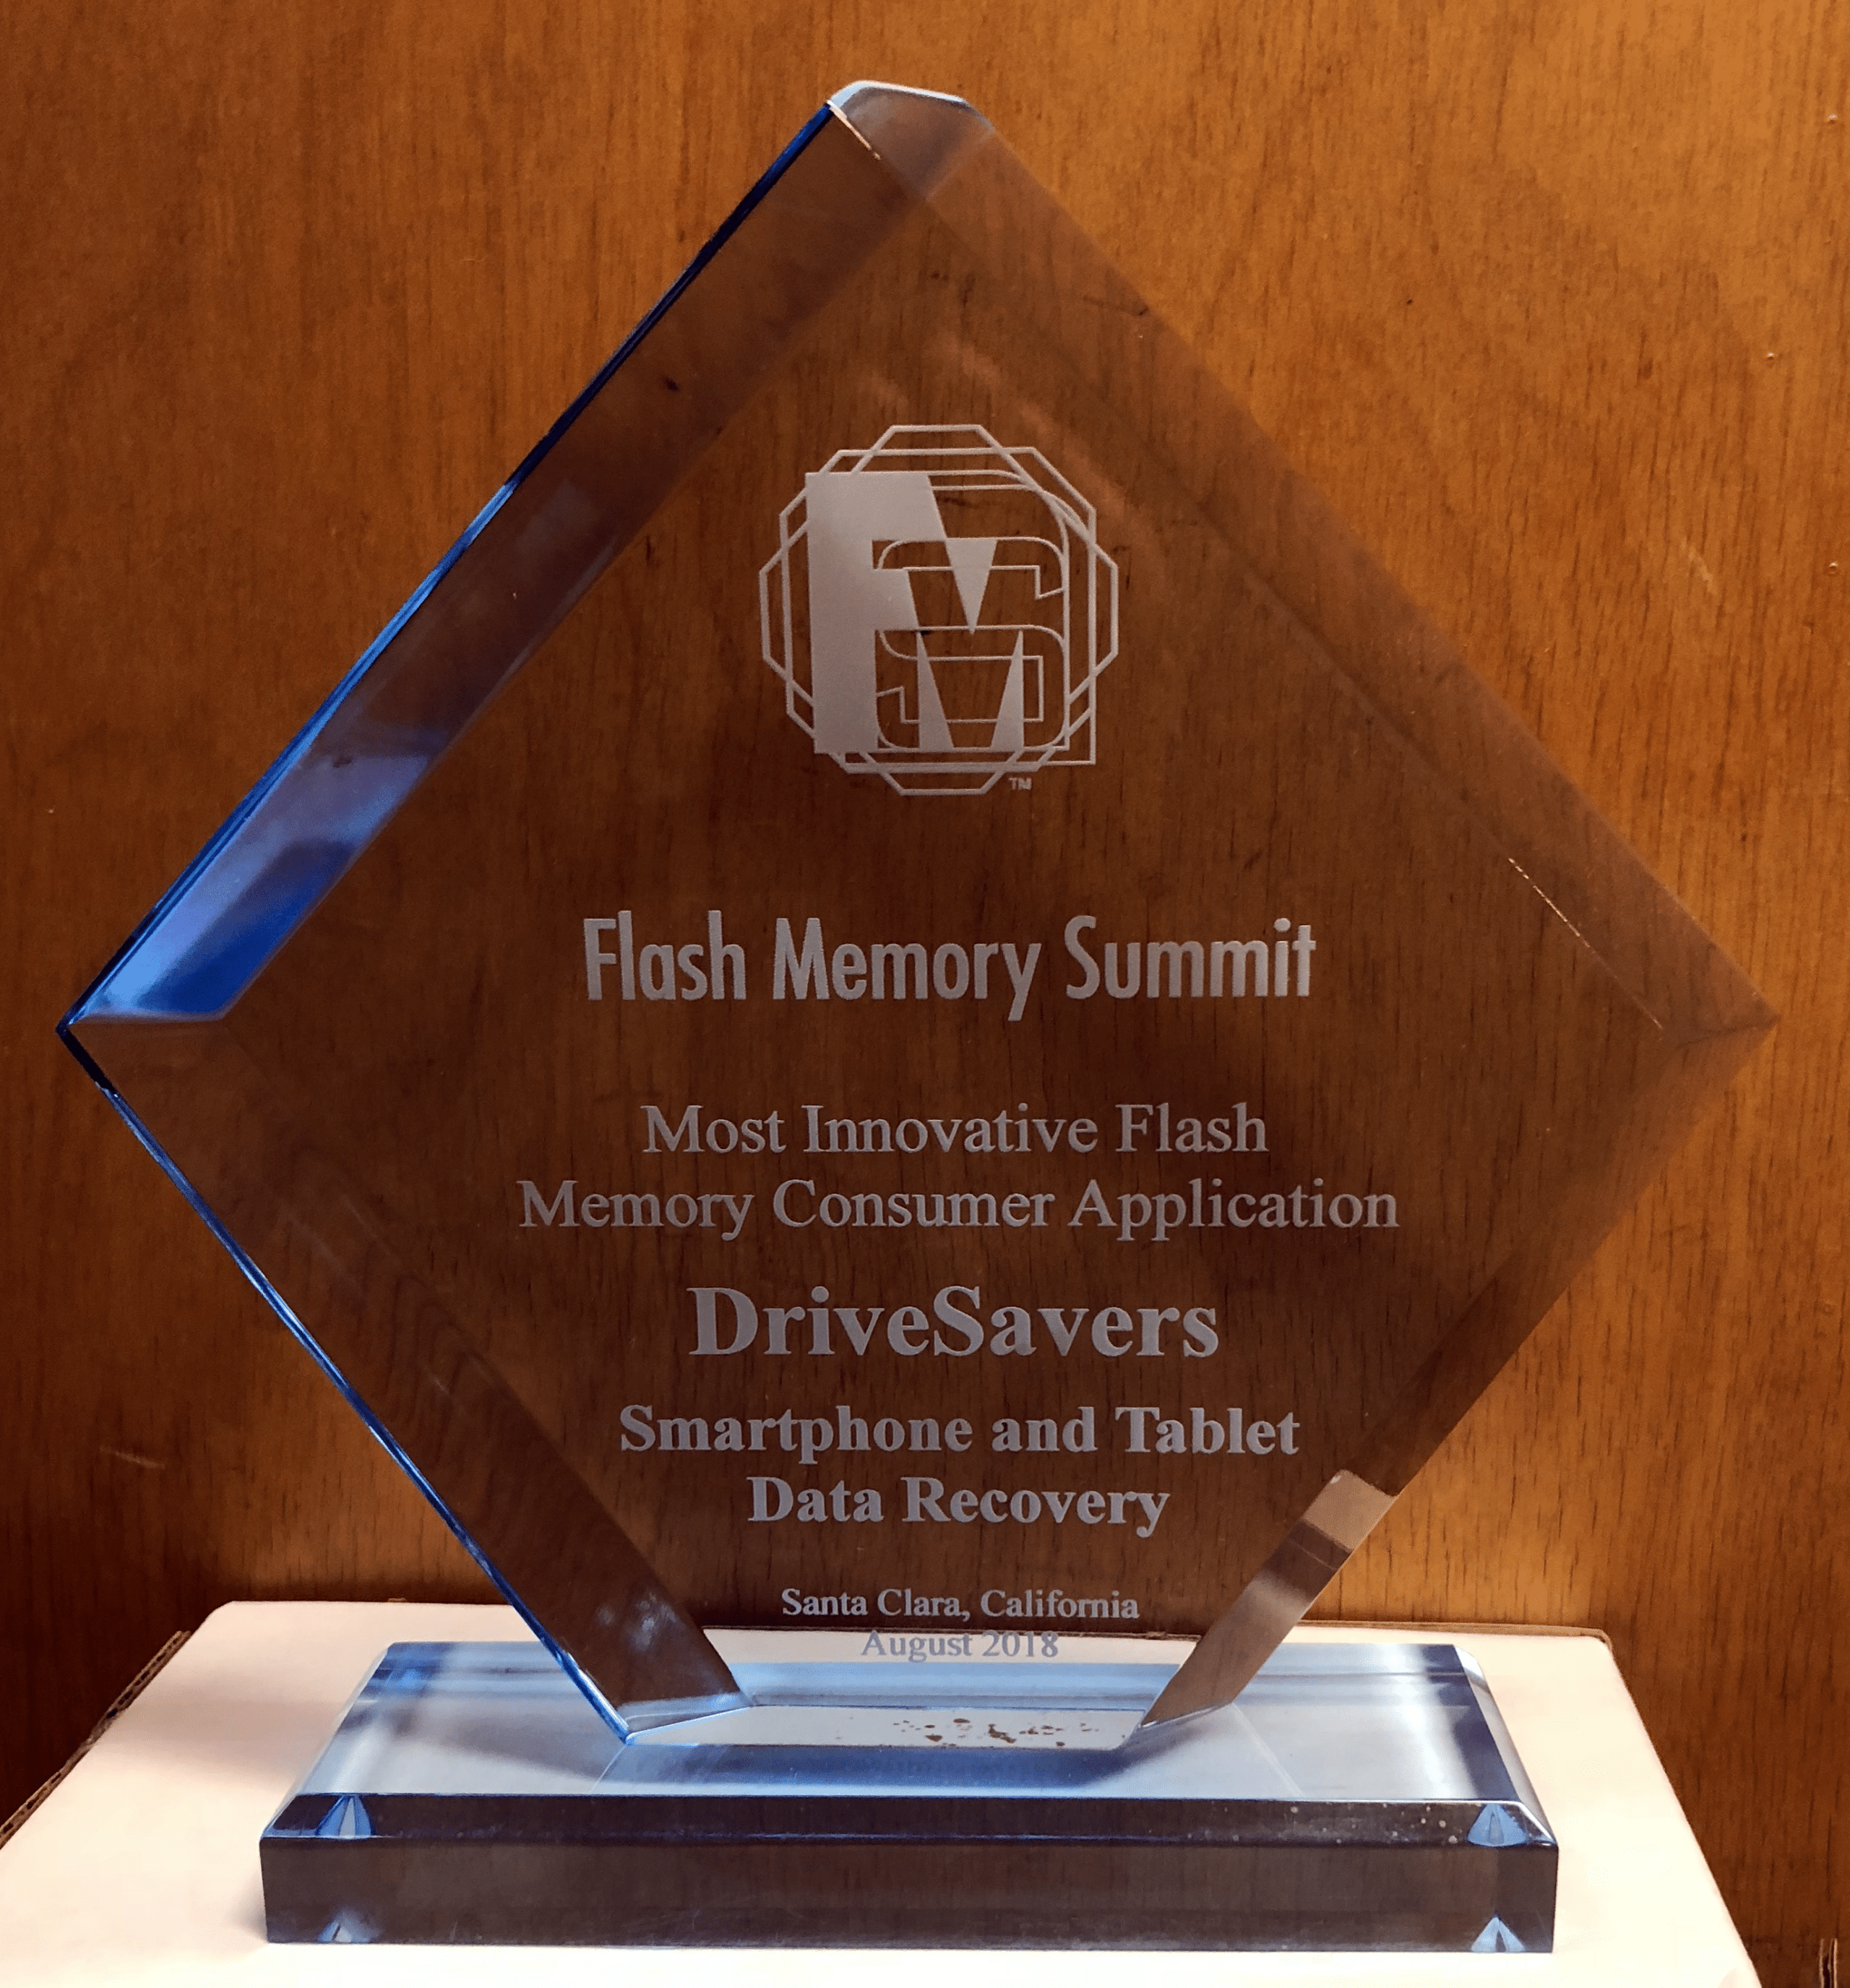 DriveSavers Wins 2018 Most Innovative Flash Memory Consumer Application Award